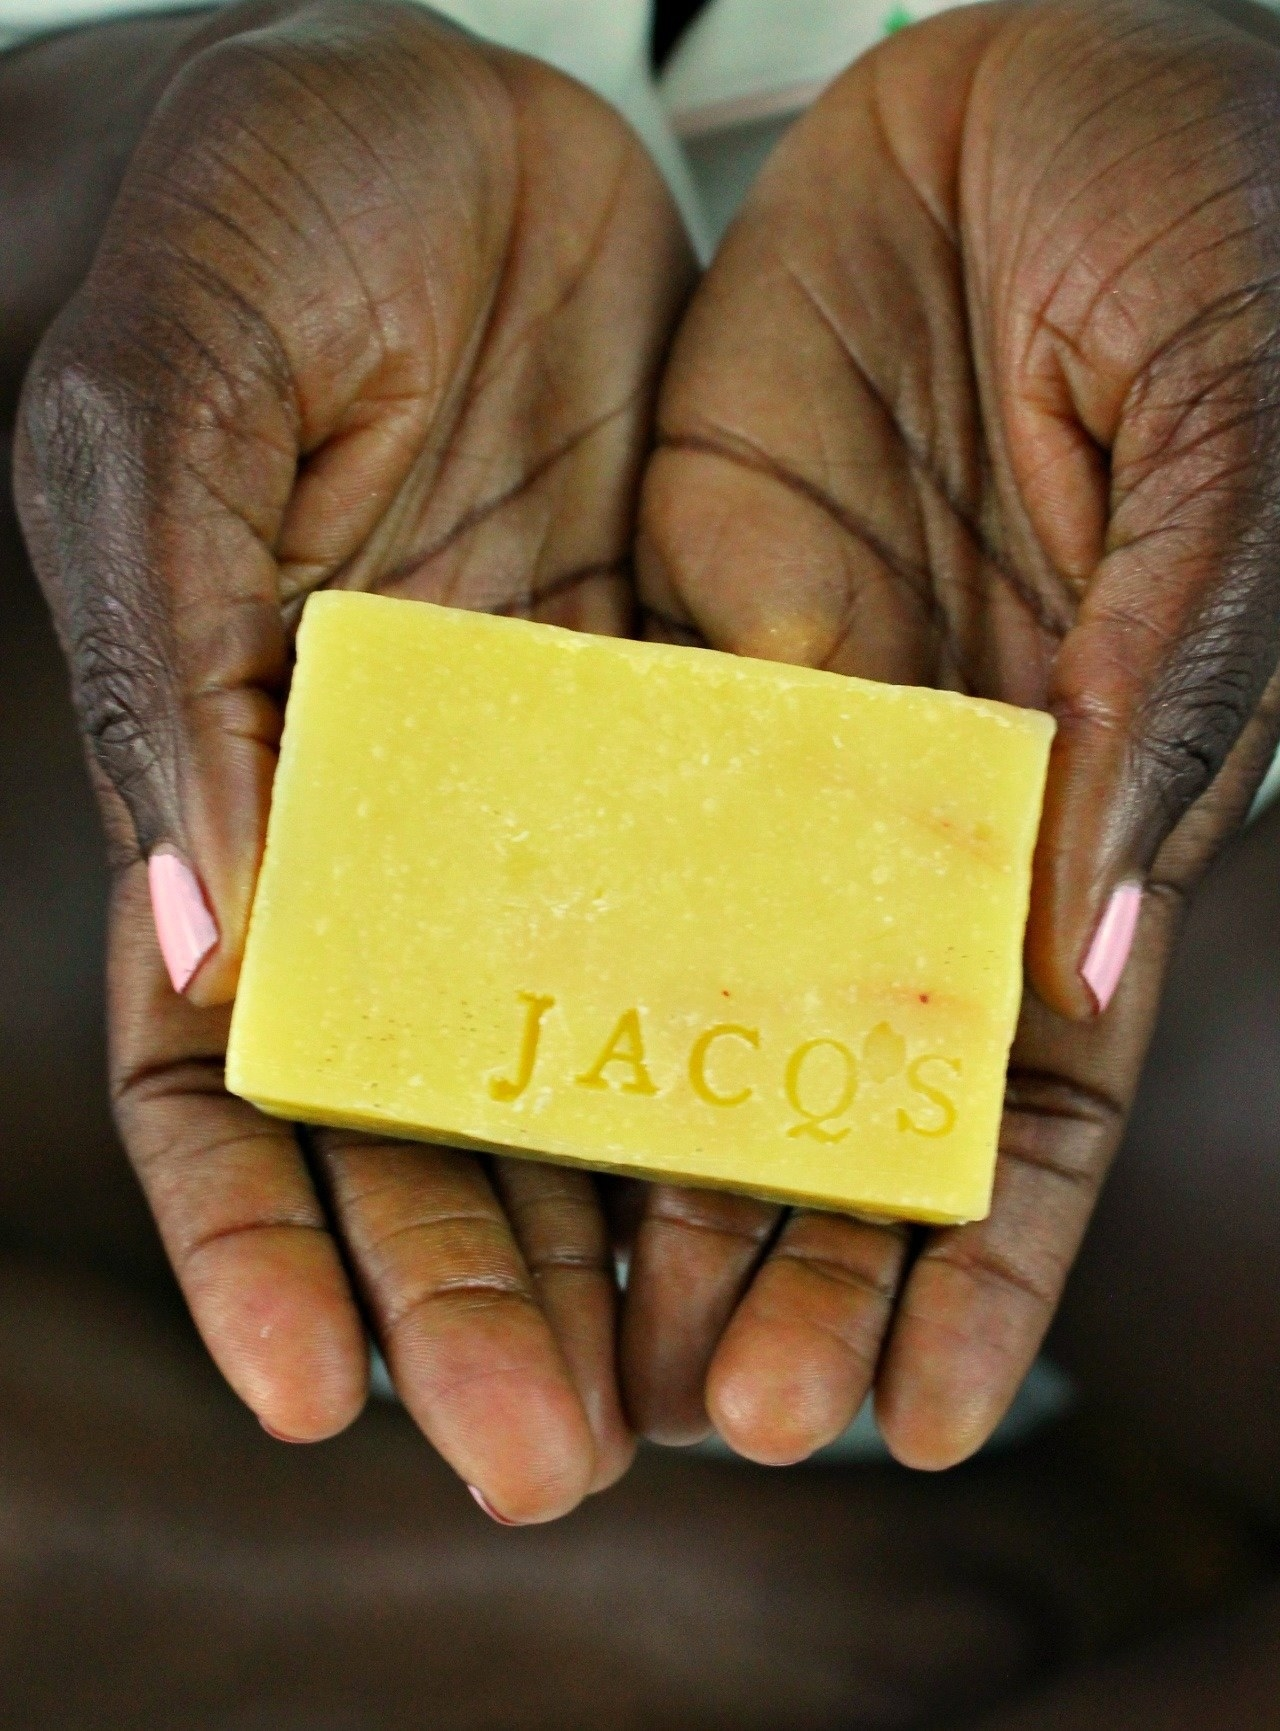 Hands holding up the yellow soap bar